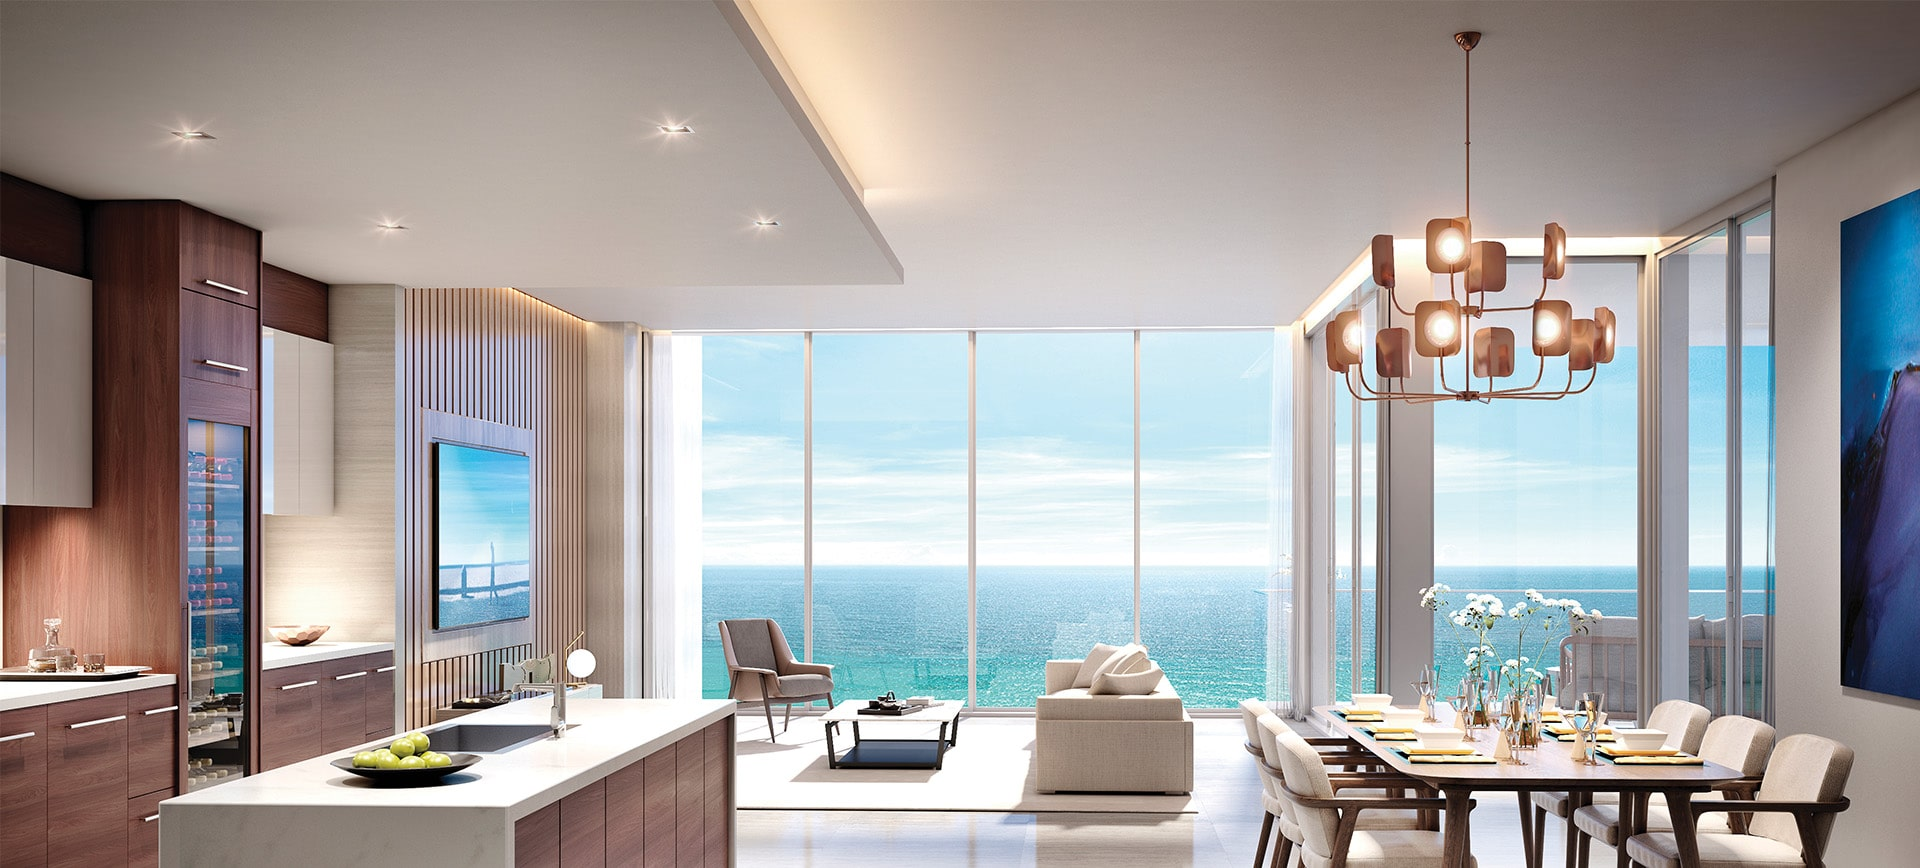 5000 North Ocean Seabreeze South Rendering by Kolter Urban